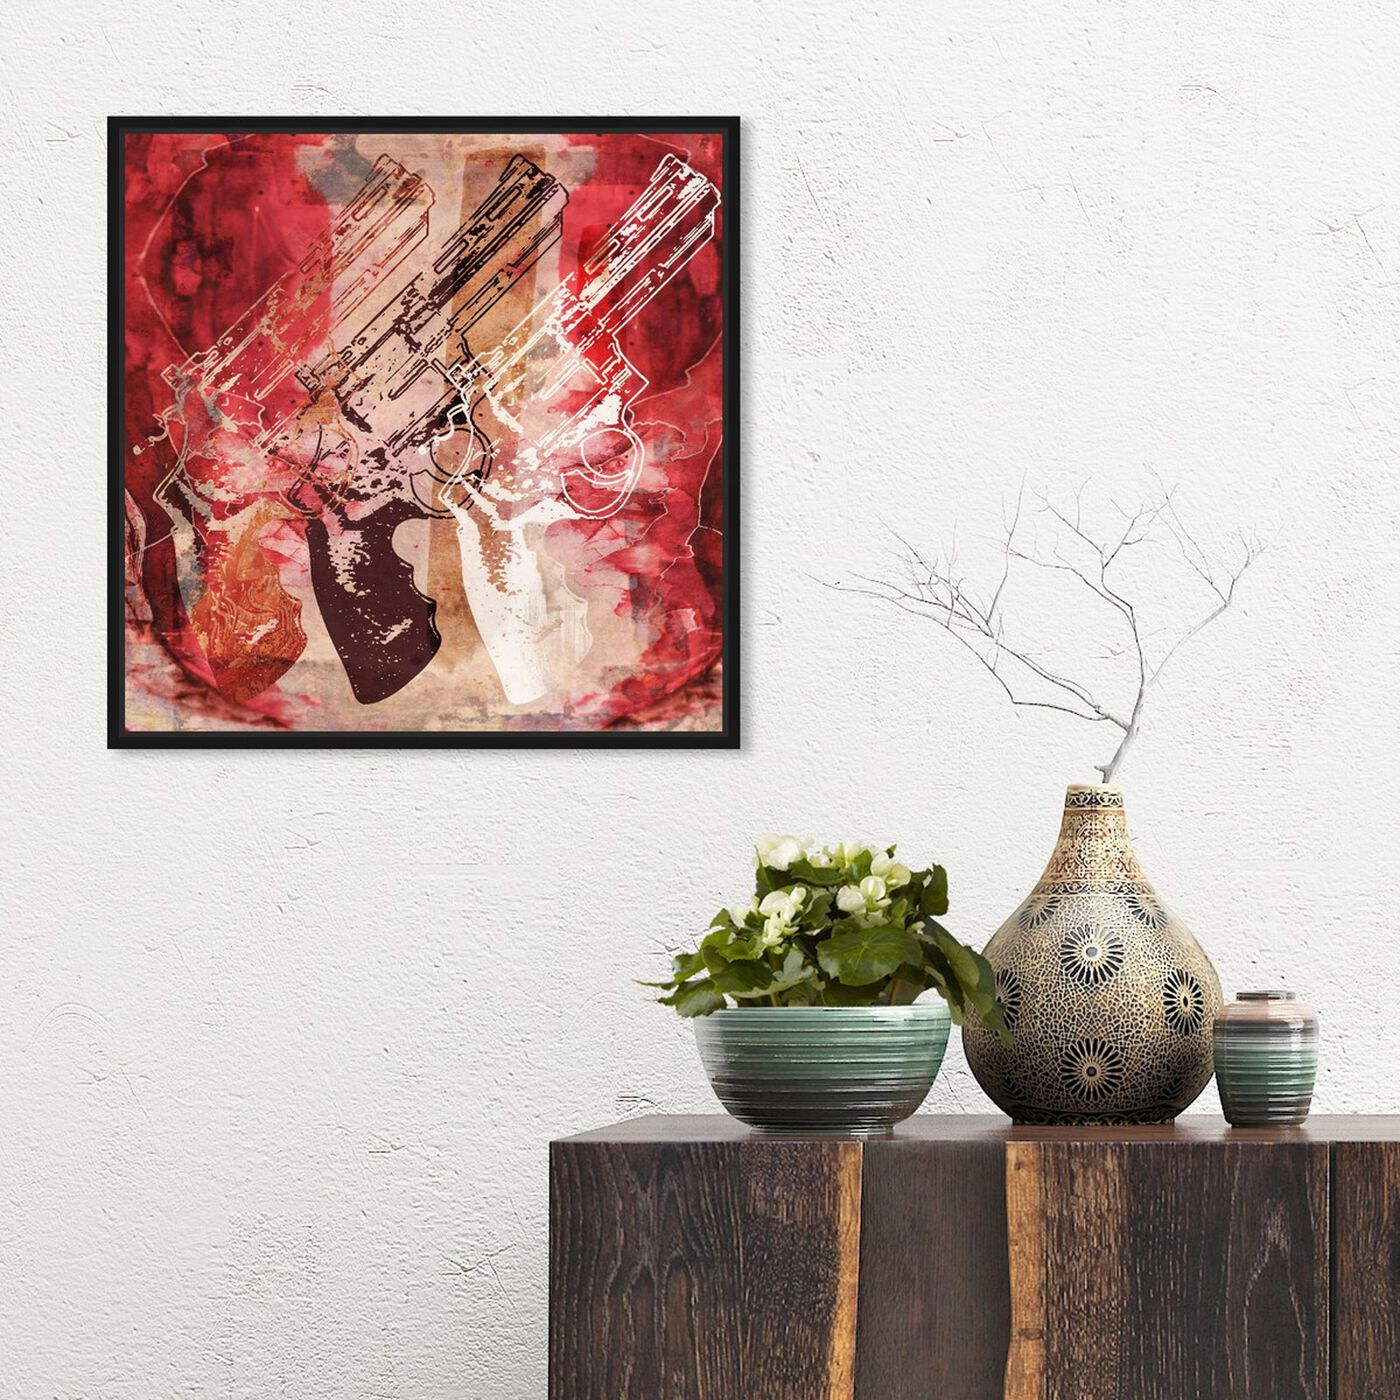 Hanging view of Guns and Roses featuring entertainment and hobbies and machine guns art.